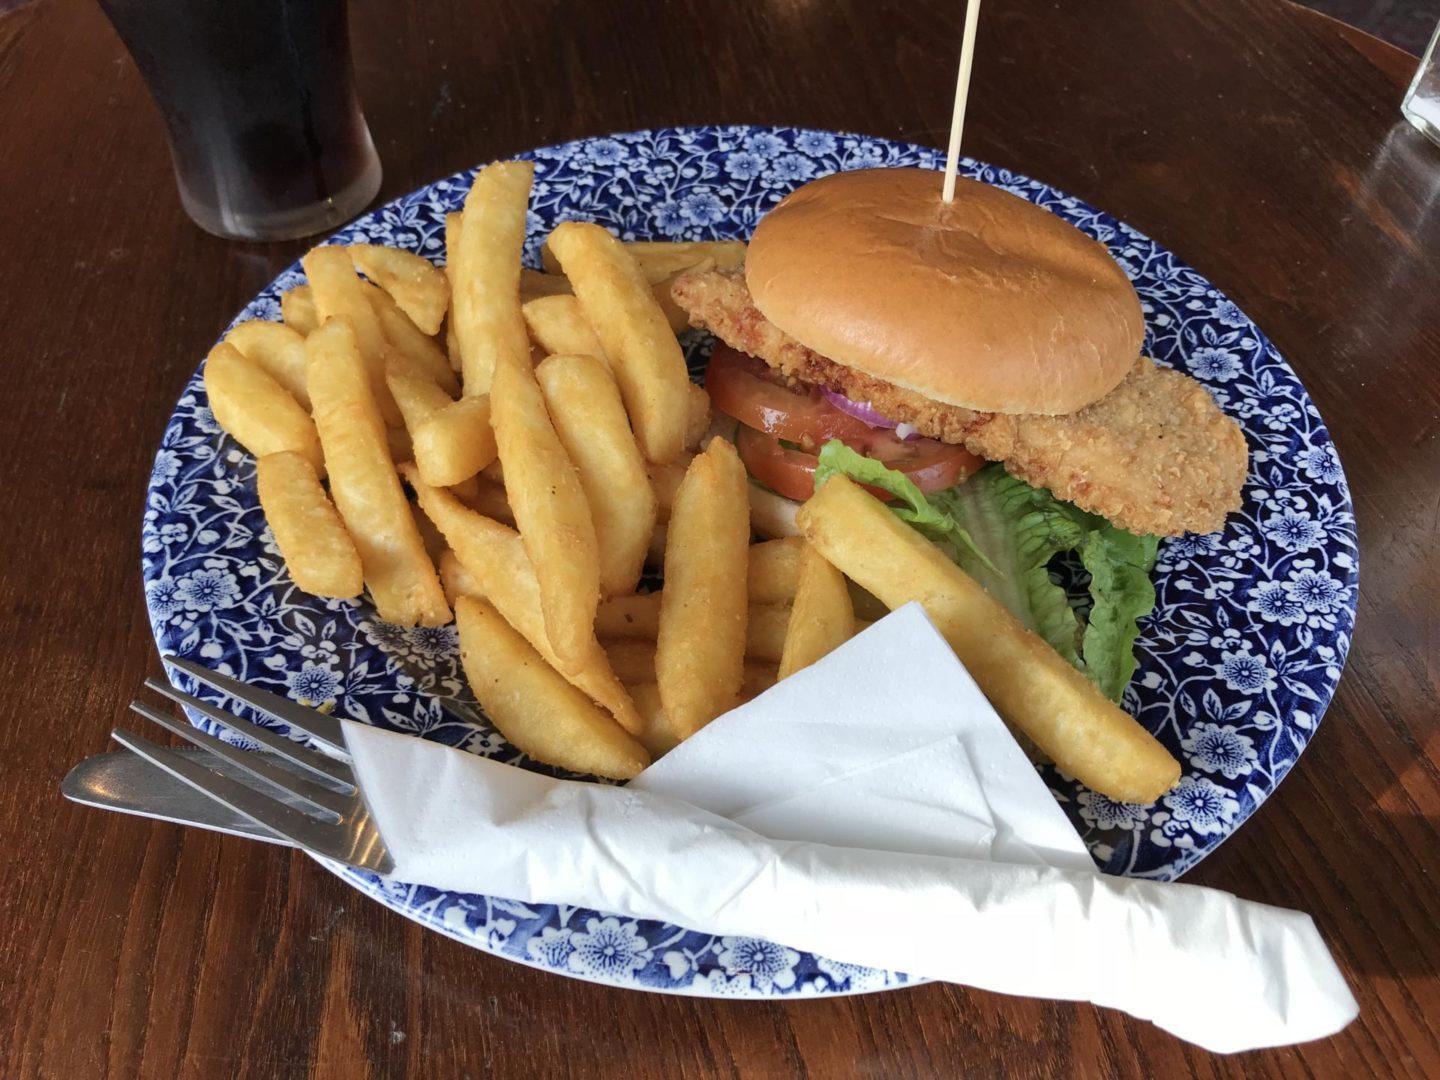 DON'T WORRY, WETHERSPOONS. WE STILL LOVE YOU